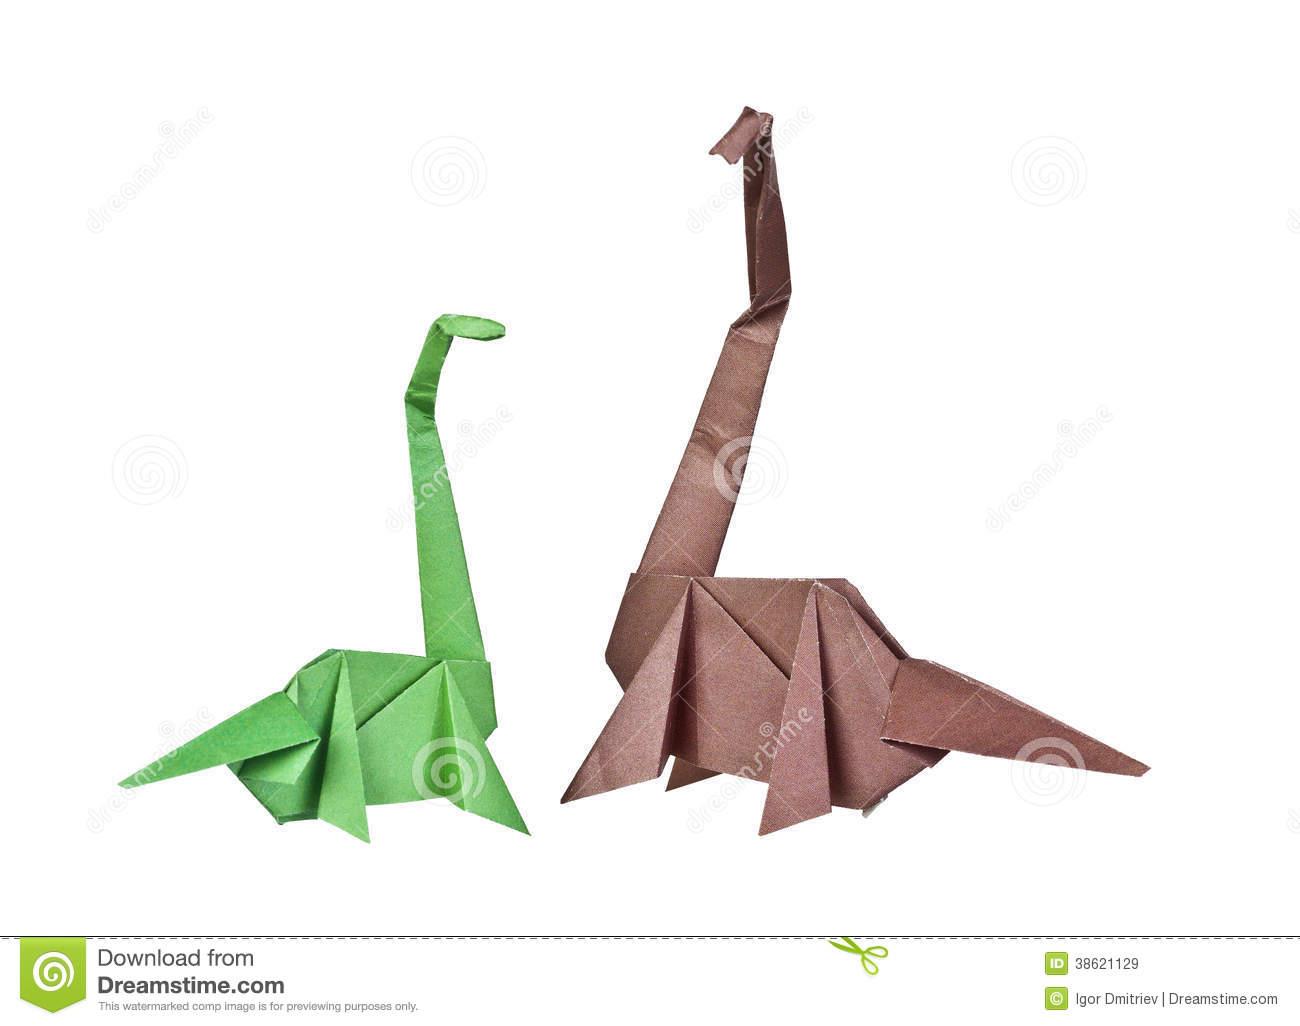 History of origami